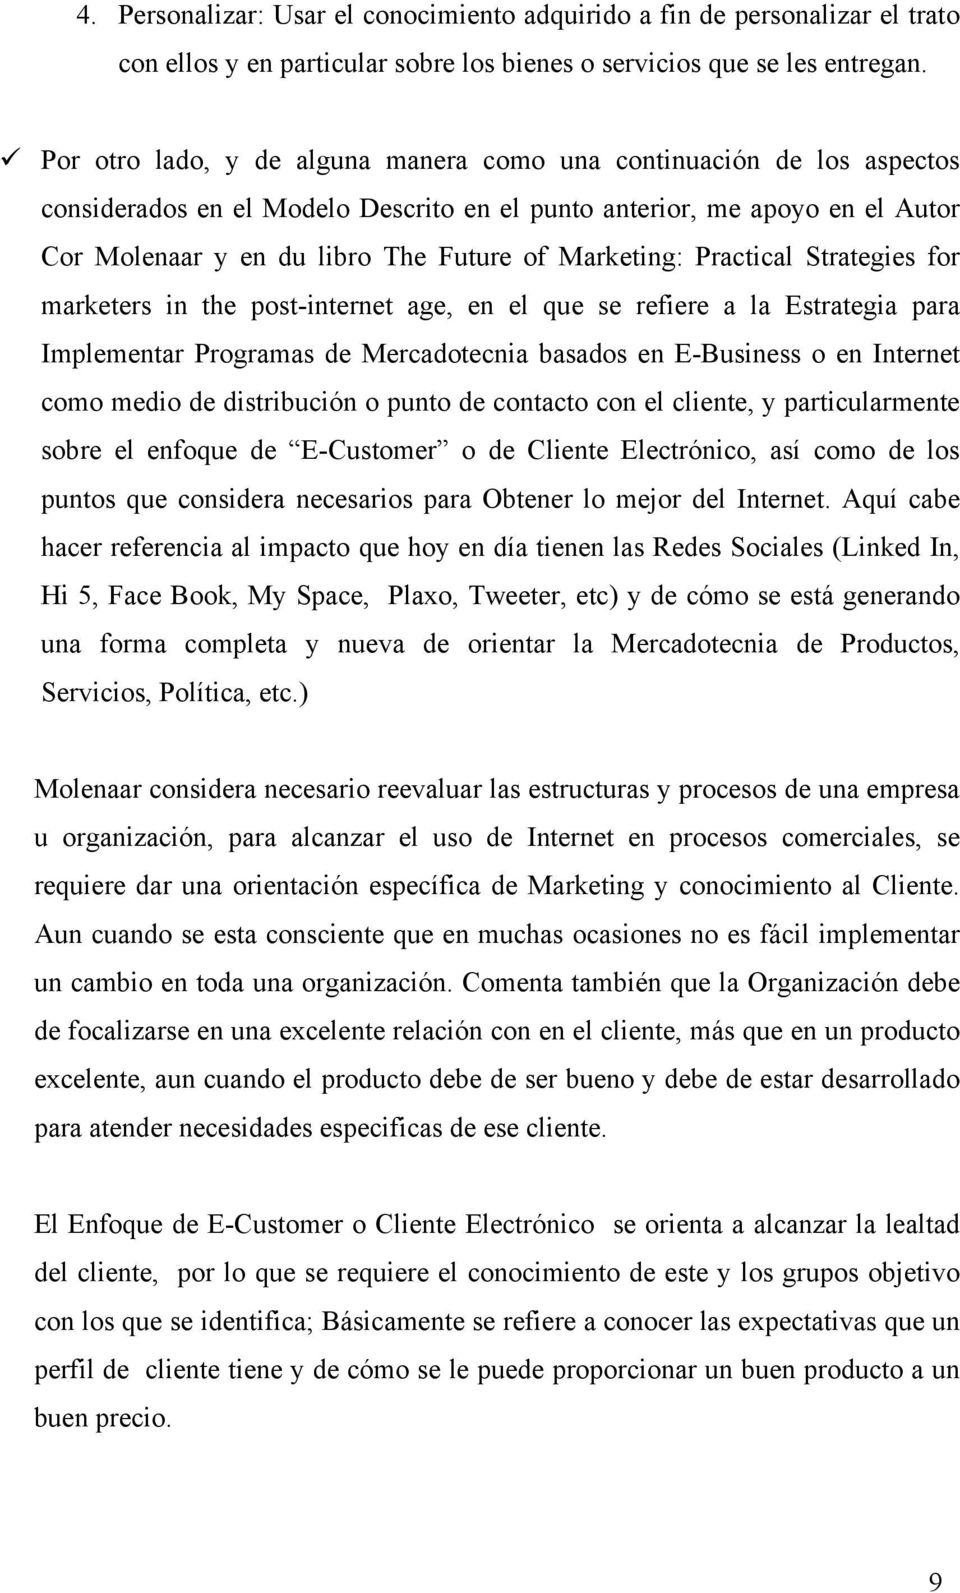 Marketing: Practical Strategies for marketers in the post-internet age, en el que se refiere a la Estrategia para Implementar Programas de Mercadotecnia basados en E-Business o en Internet como medio